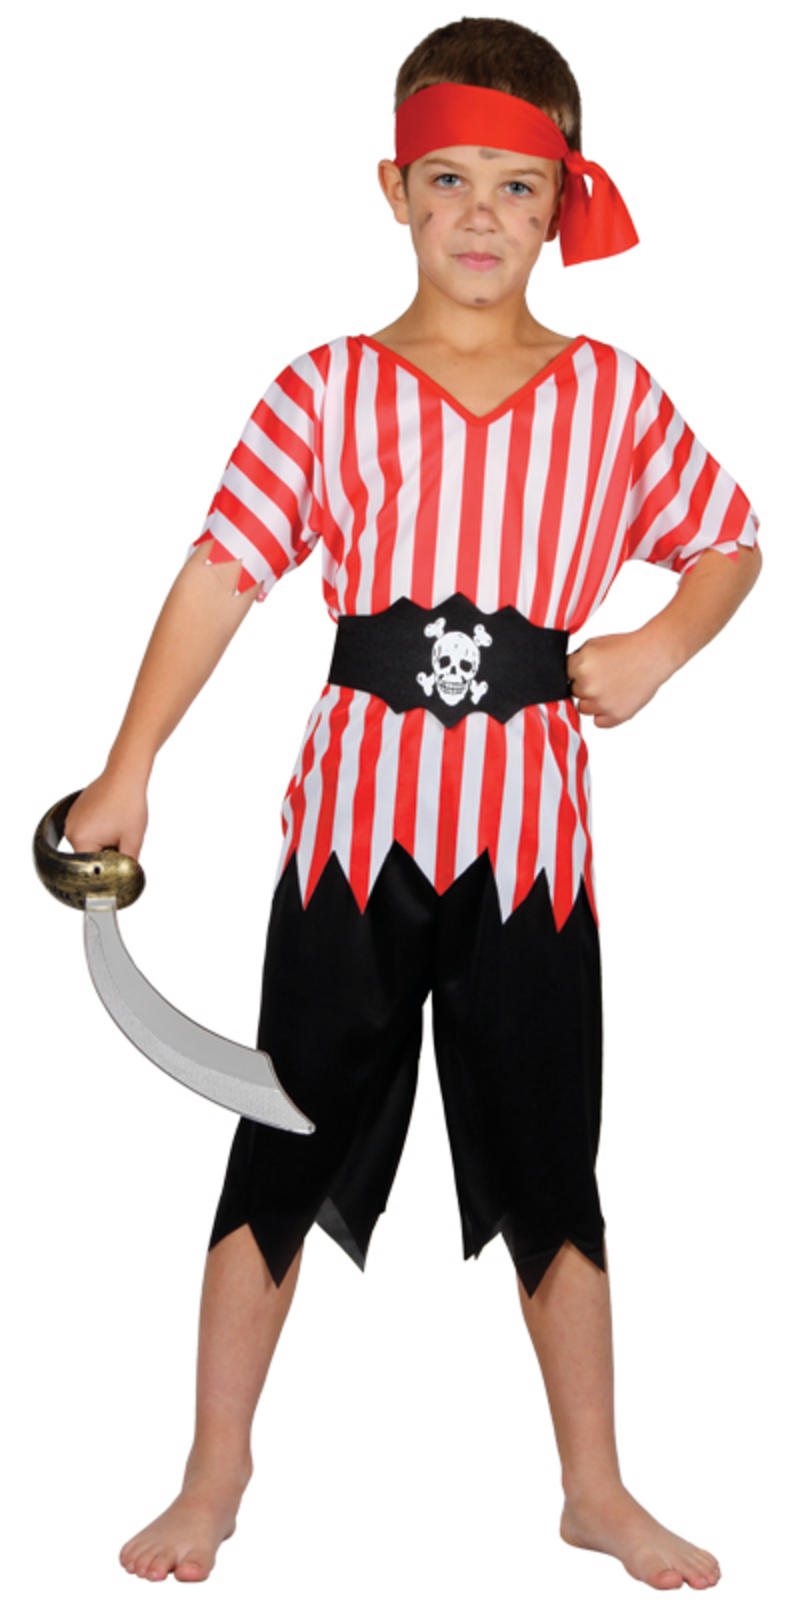 Find and save ideas about Boys fancy dress on Pinterest. | See more ideas about Childrens dressing up, Fancy dress costume and Childrens fancy dress.